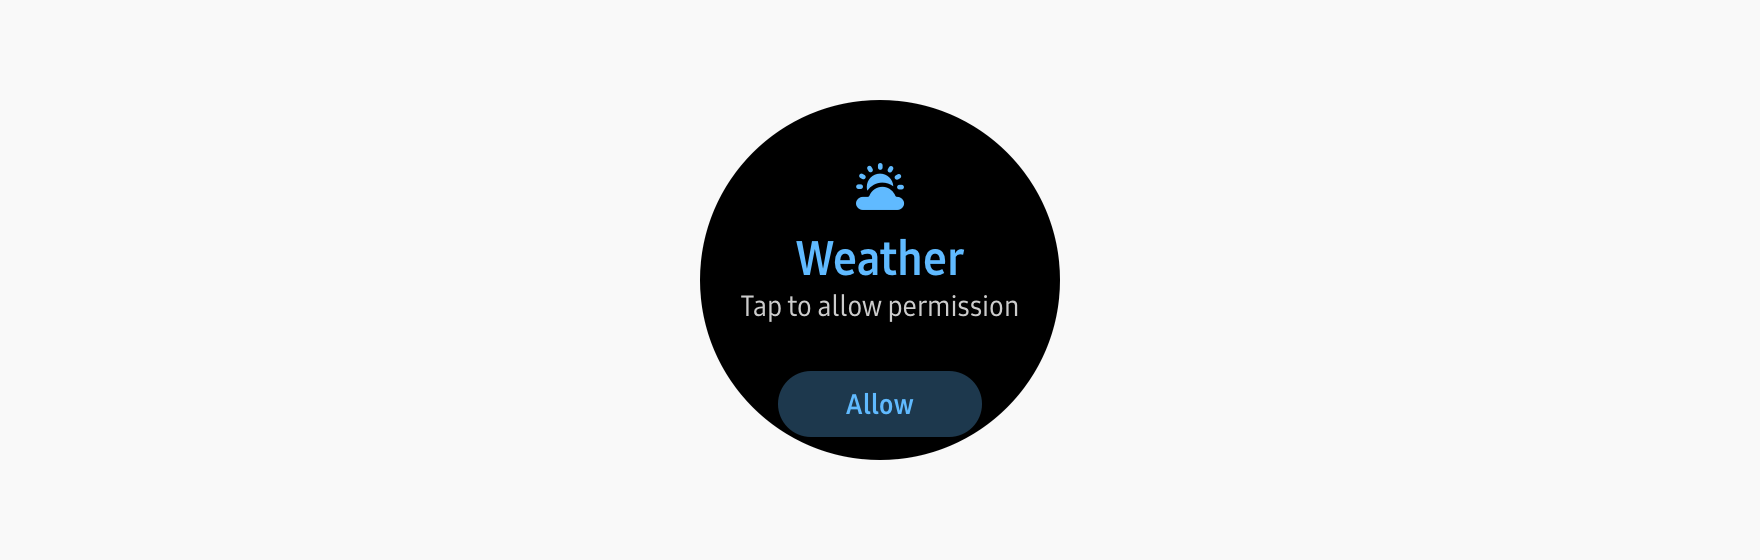 User can tap to move to Permission pop-up